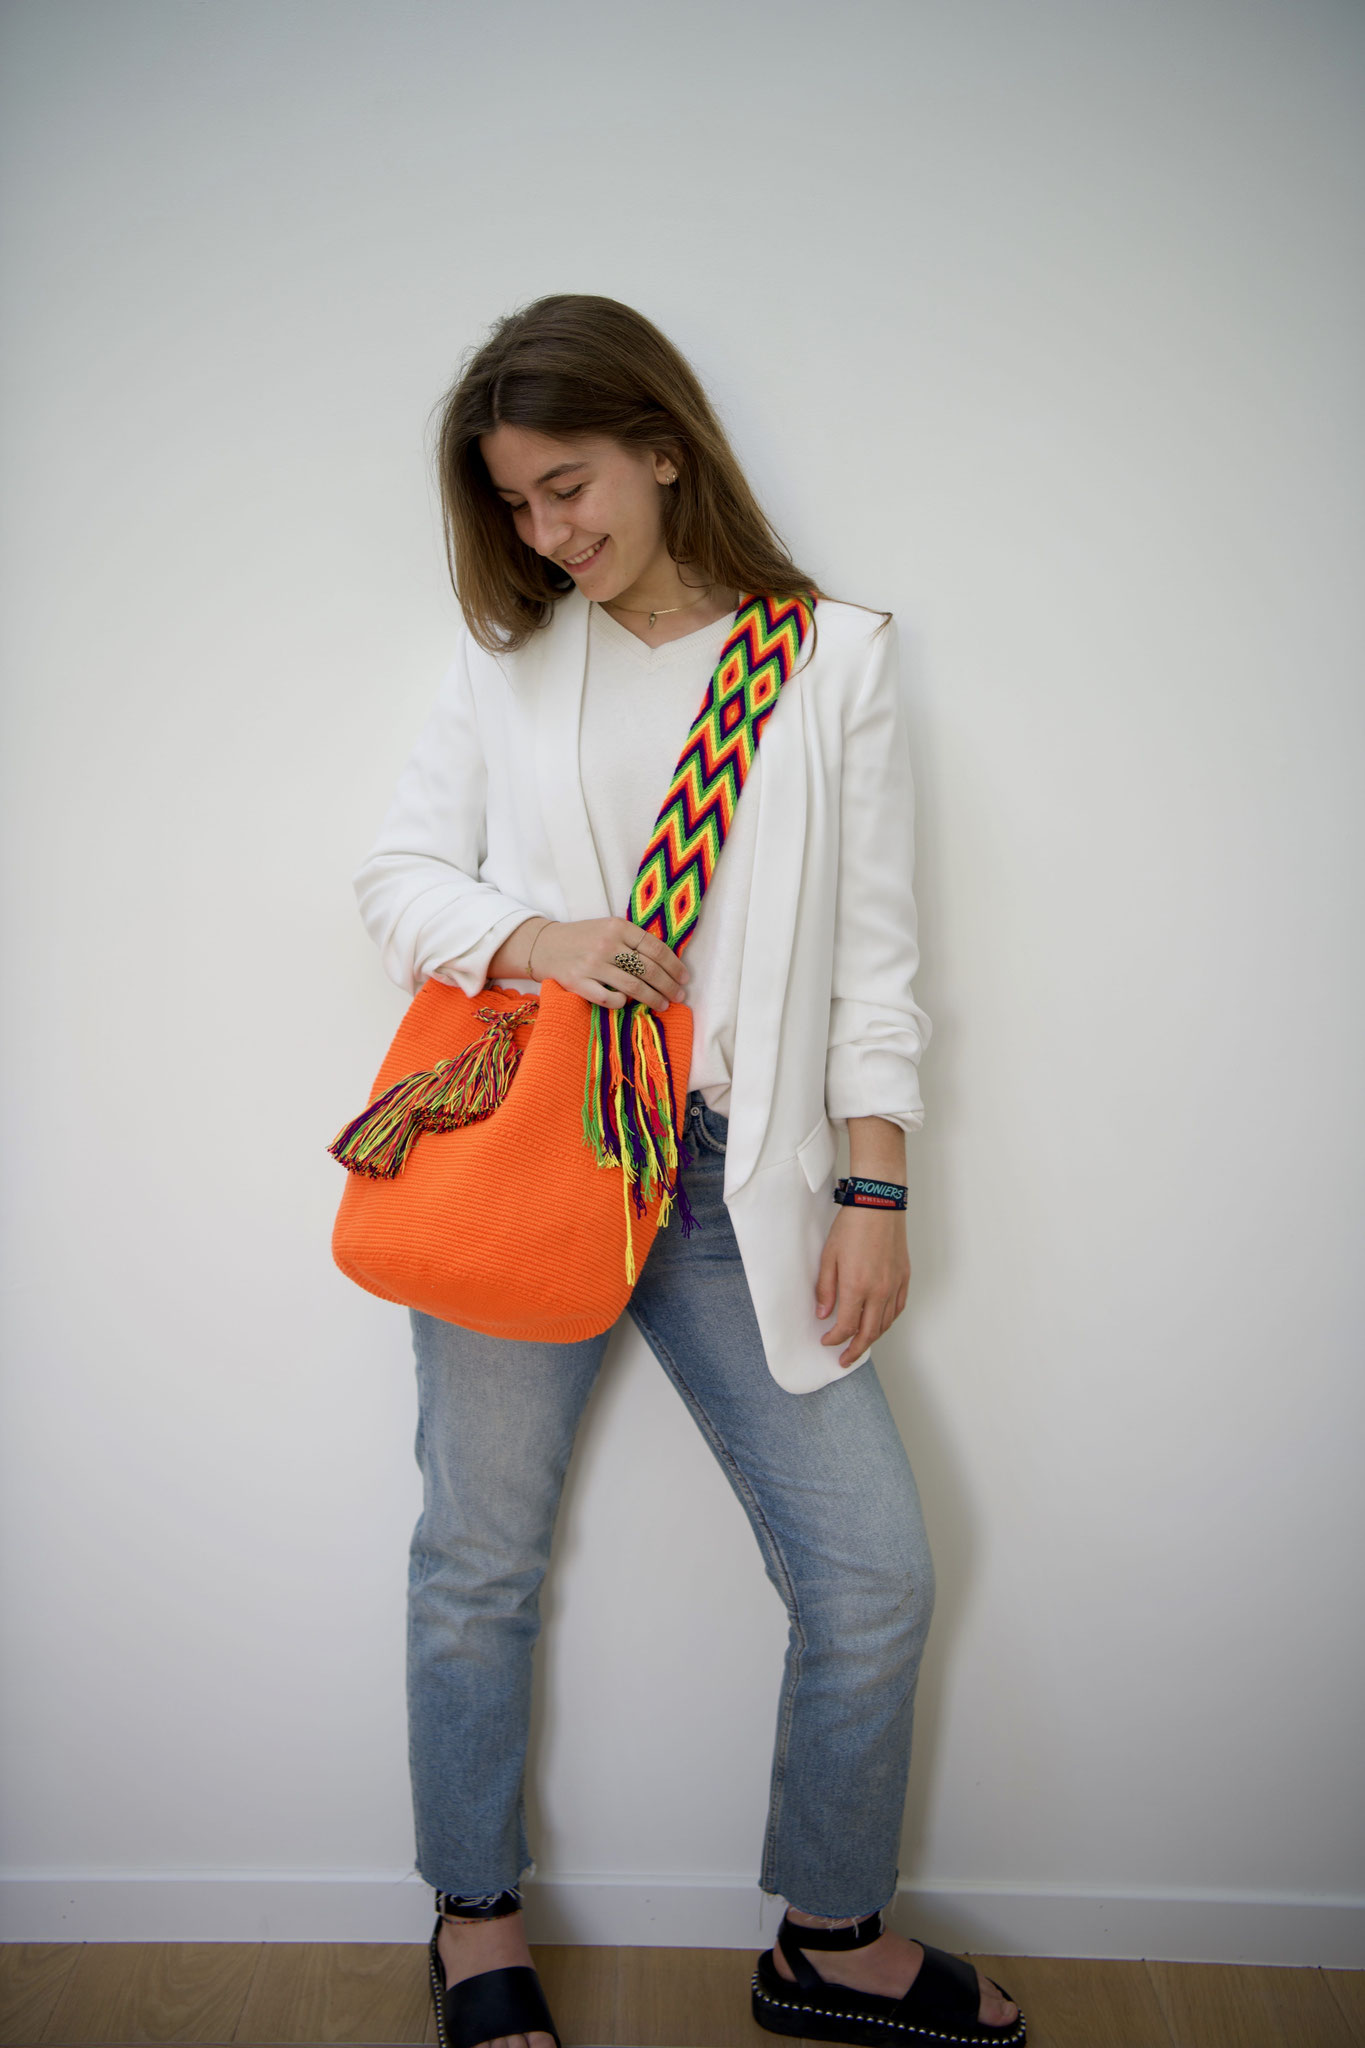 Handcrafted Mochila bags